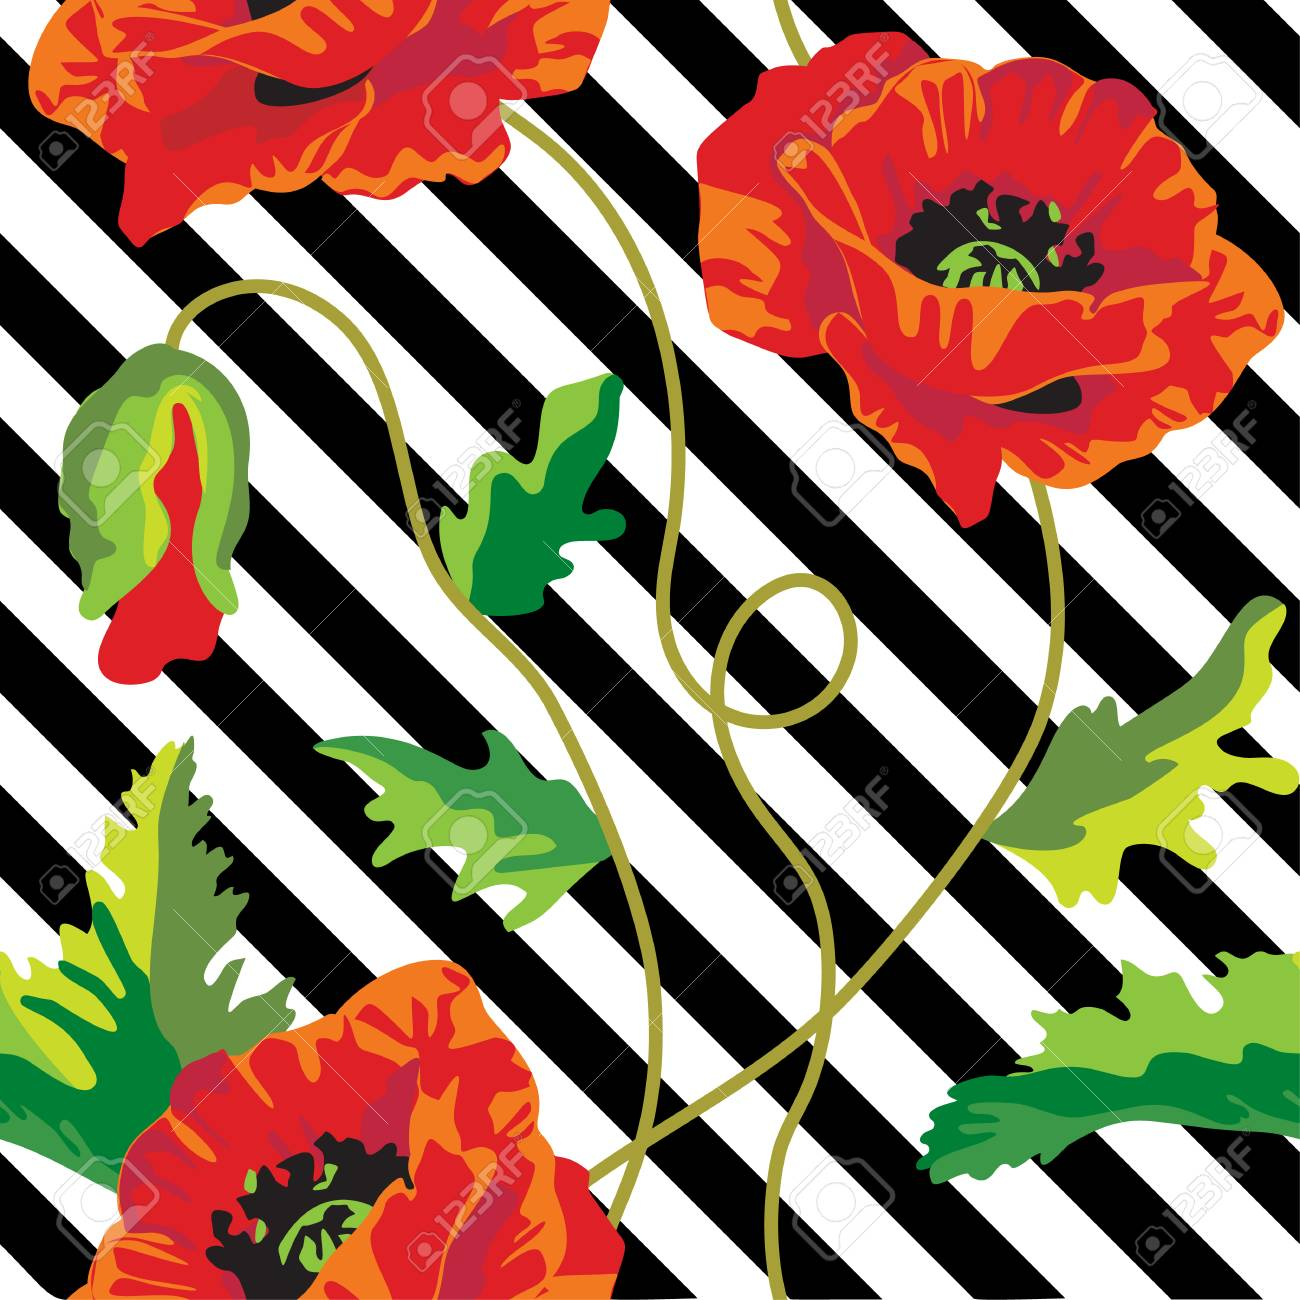 Seamless Vector With Poppy Flowers On Black And White Stripes